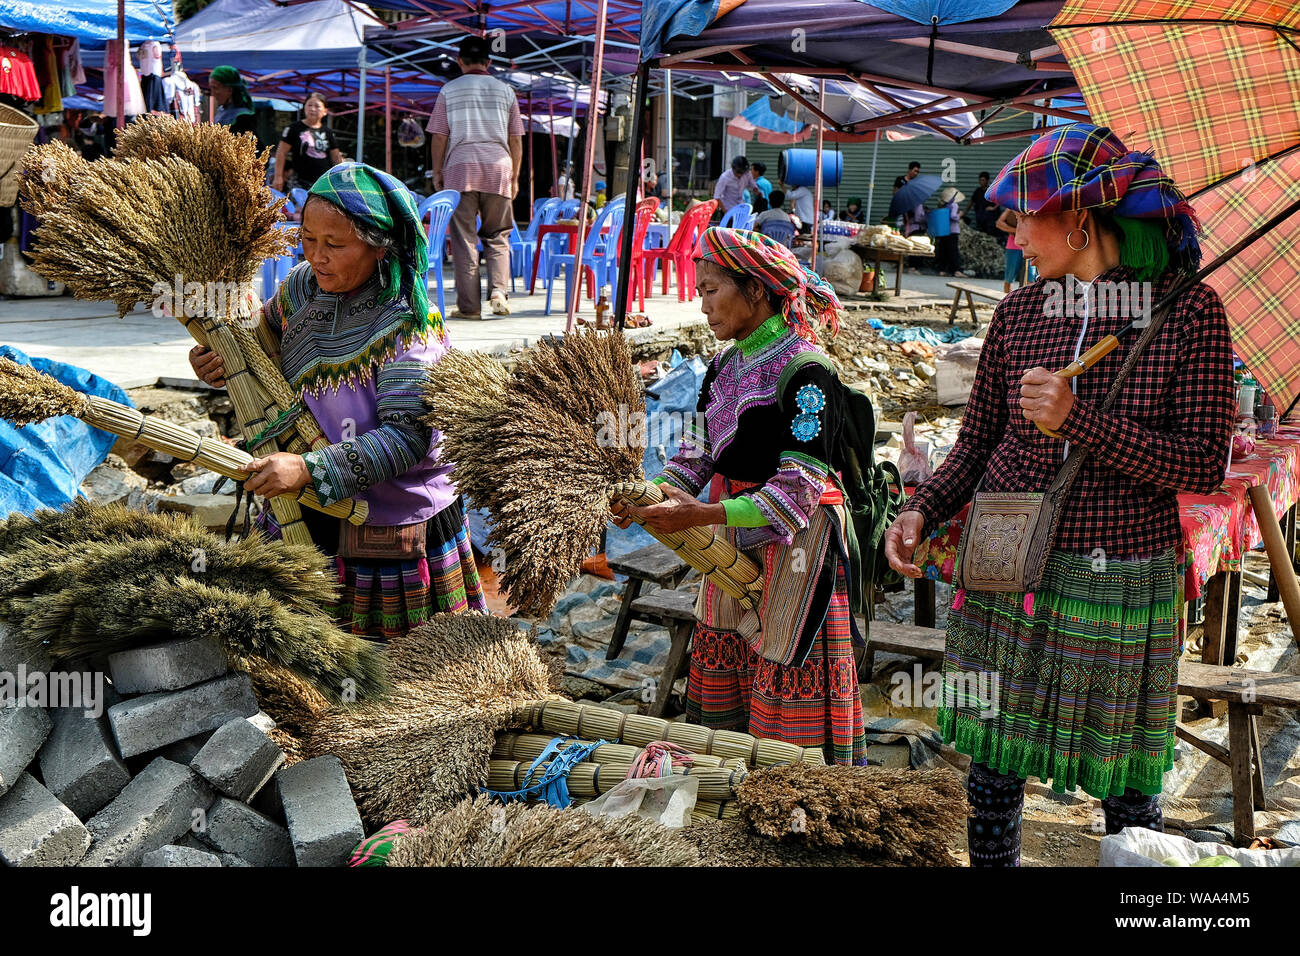 Brooms Travel Stock Photos & Brooms Travel Stock Images - Alamy